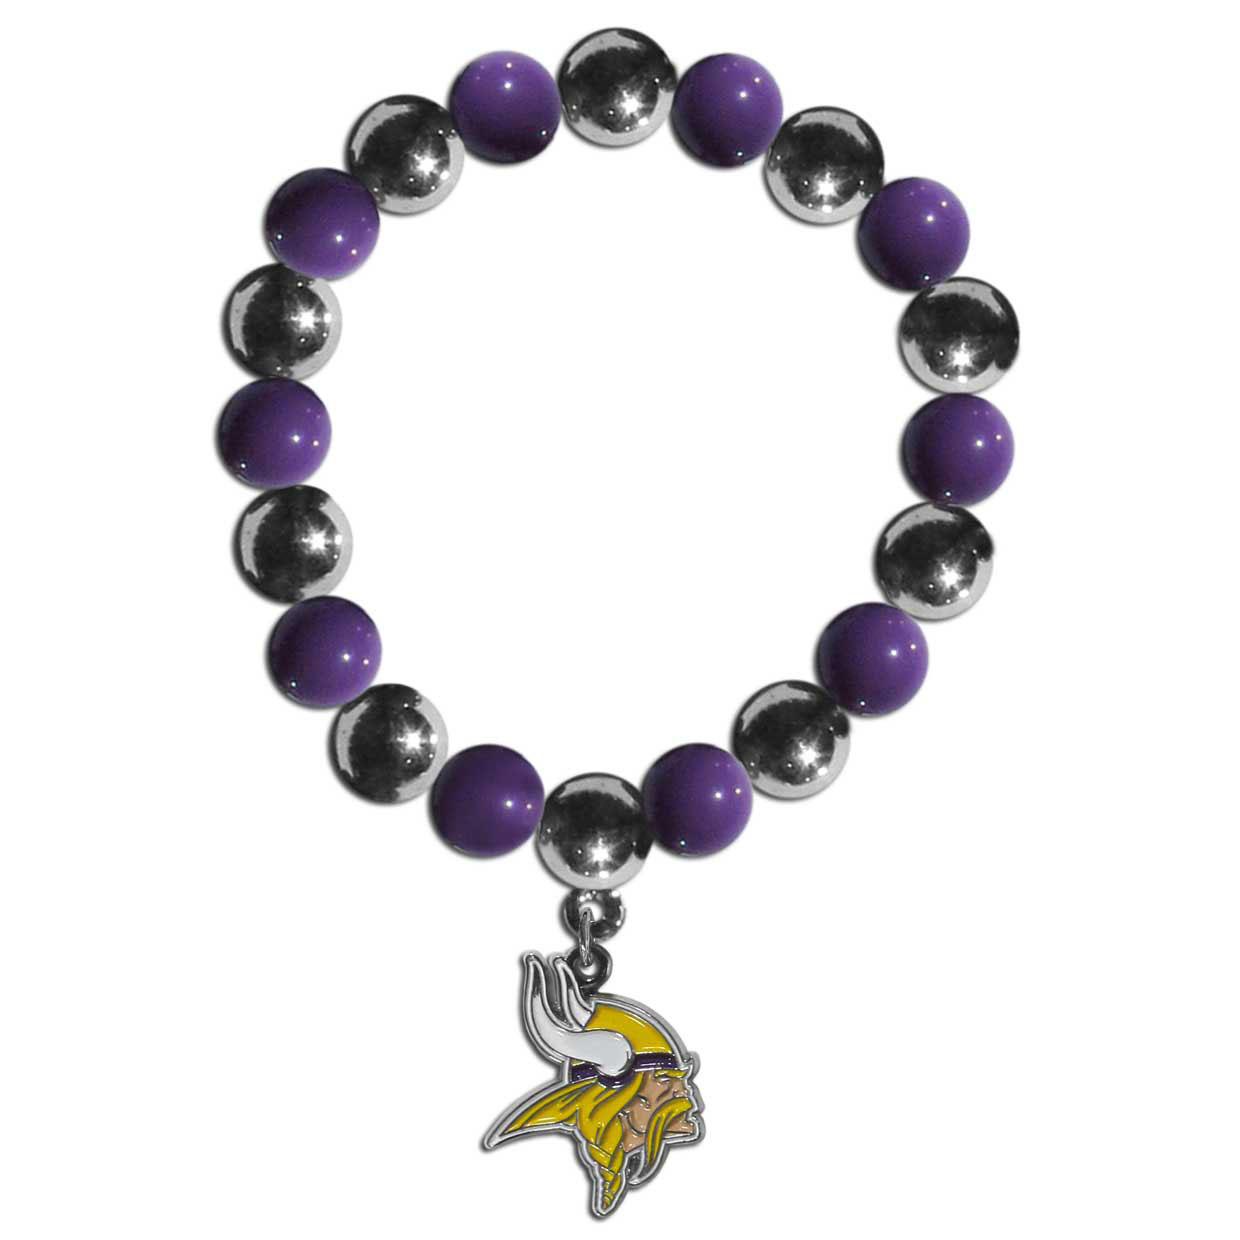 Minnesota Vikings Chrome Bead Bracelet - Flash your Minnesota Vikings spirit with this bright stretch bracelet. This new bracelet features alternating charm & team beads on stretch cord with a nickel-free enameled chrome team charm. This bracelet adds the perfect pop of color to your game day accessories.